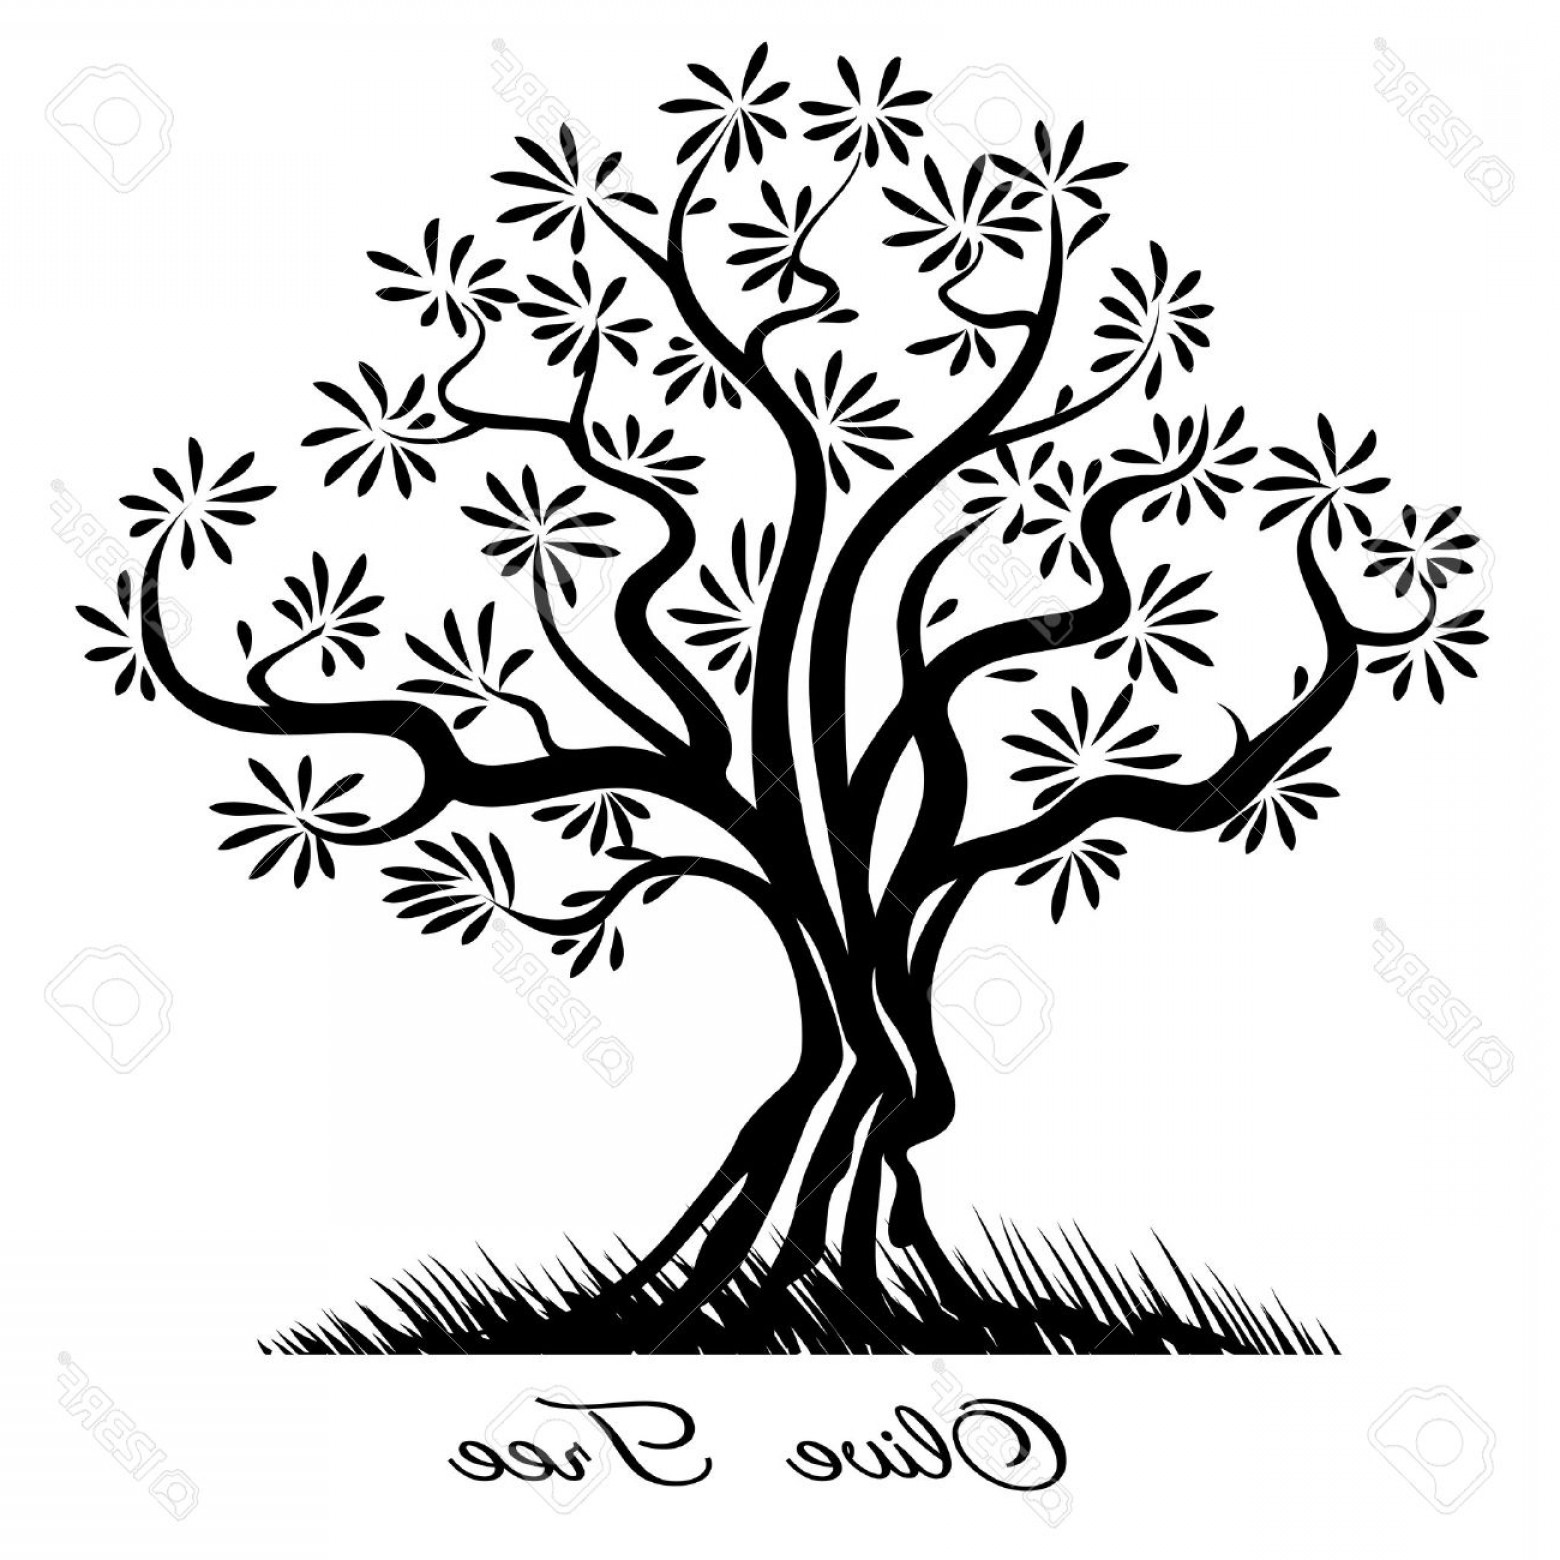 1560x1560 Olive Tree Vector Arenawp